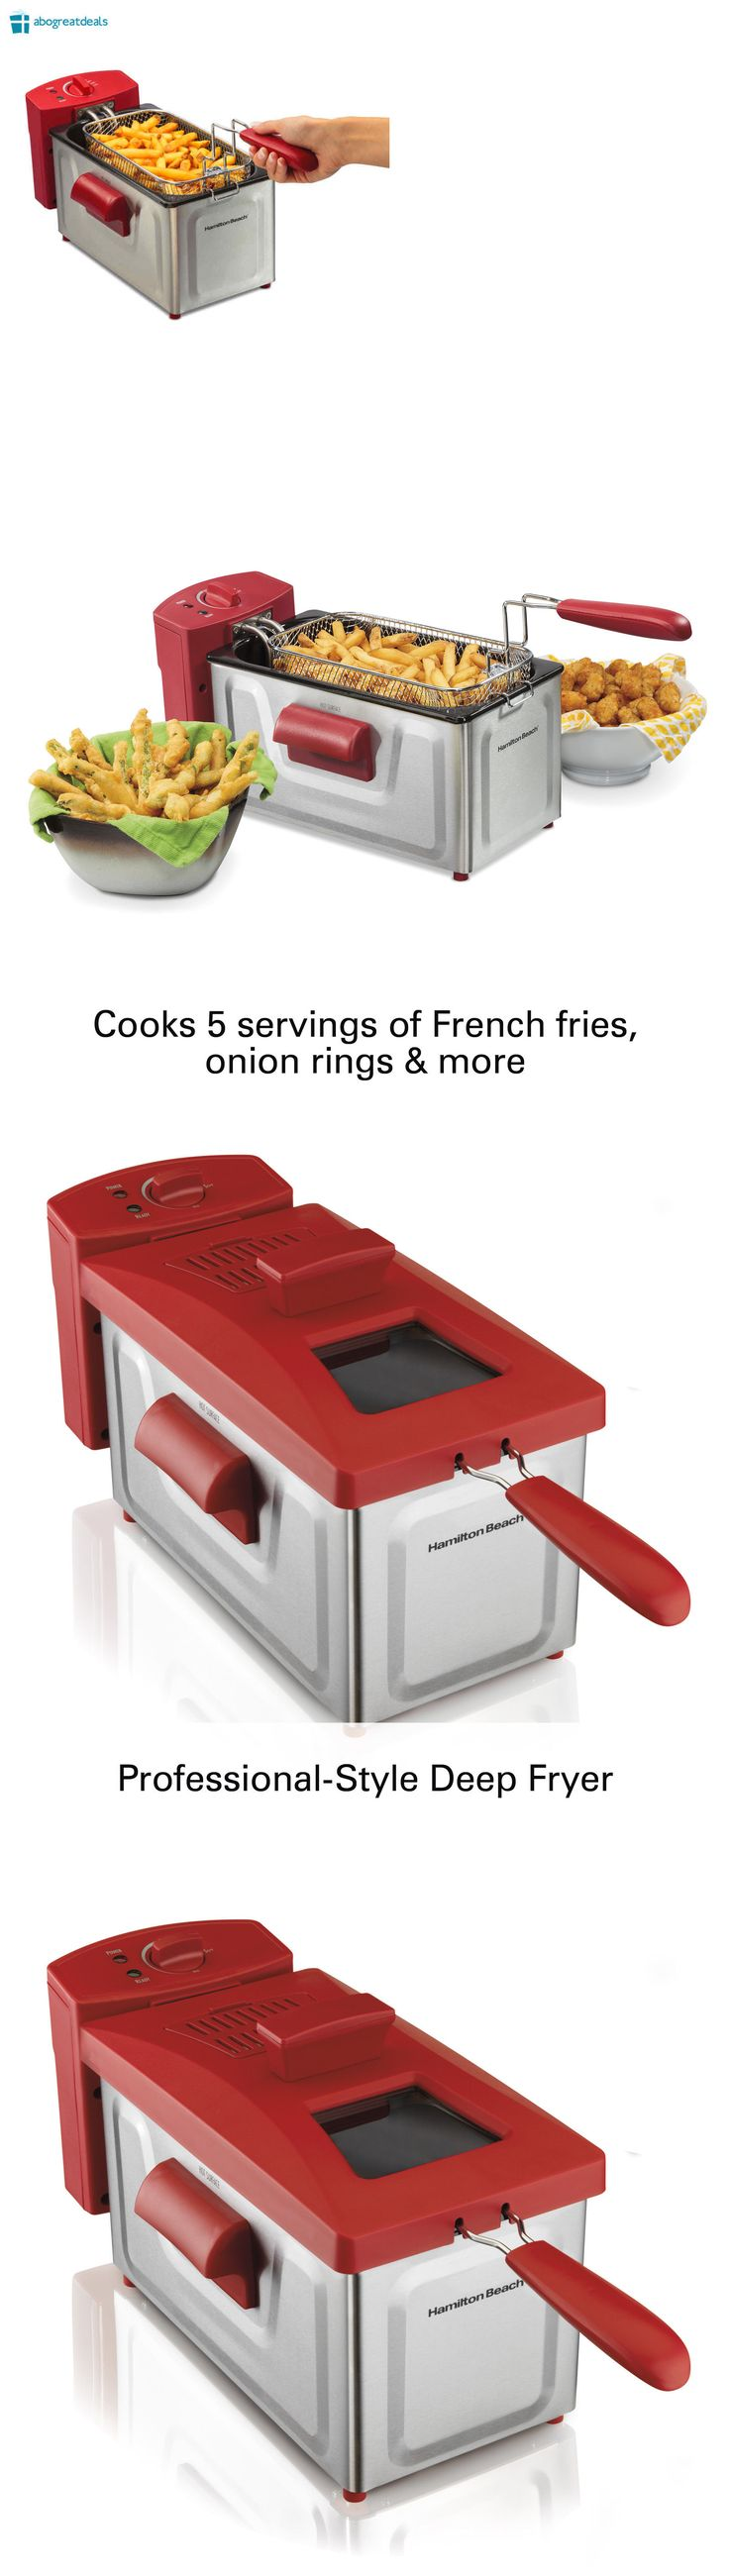 Deep Fryers 20674: 2 Liter Deep Fryer Basket Electric Cooker Kitchen Countertop Stainless Steel Red -> BUY IT NOW ONLY: $52.92 on eBay!